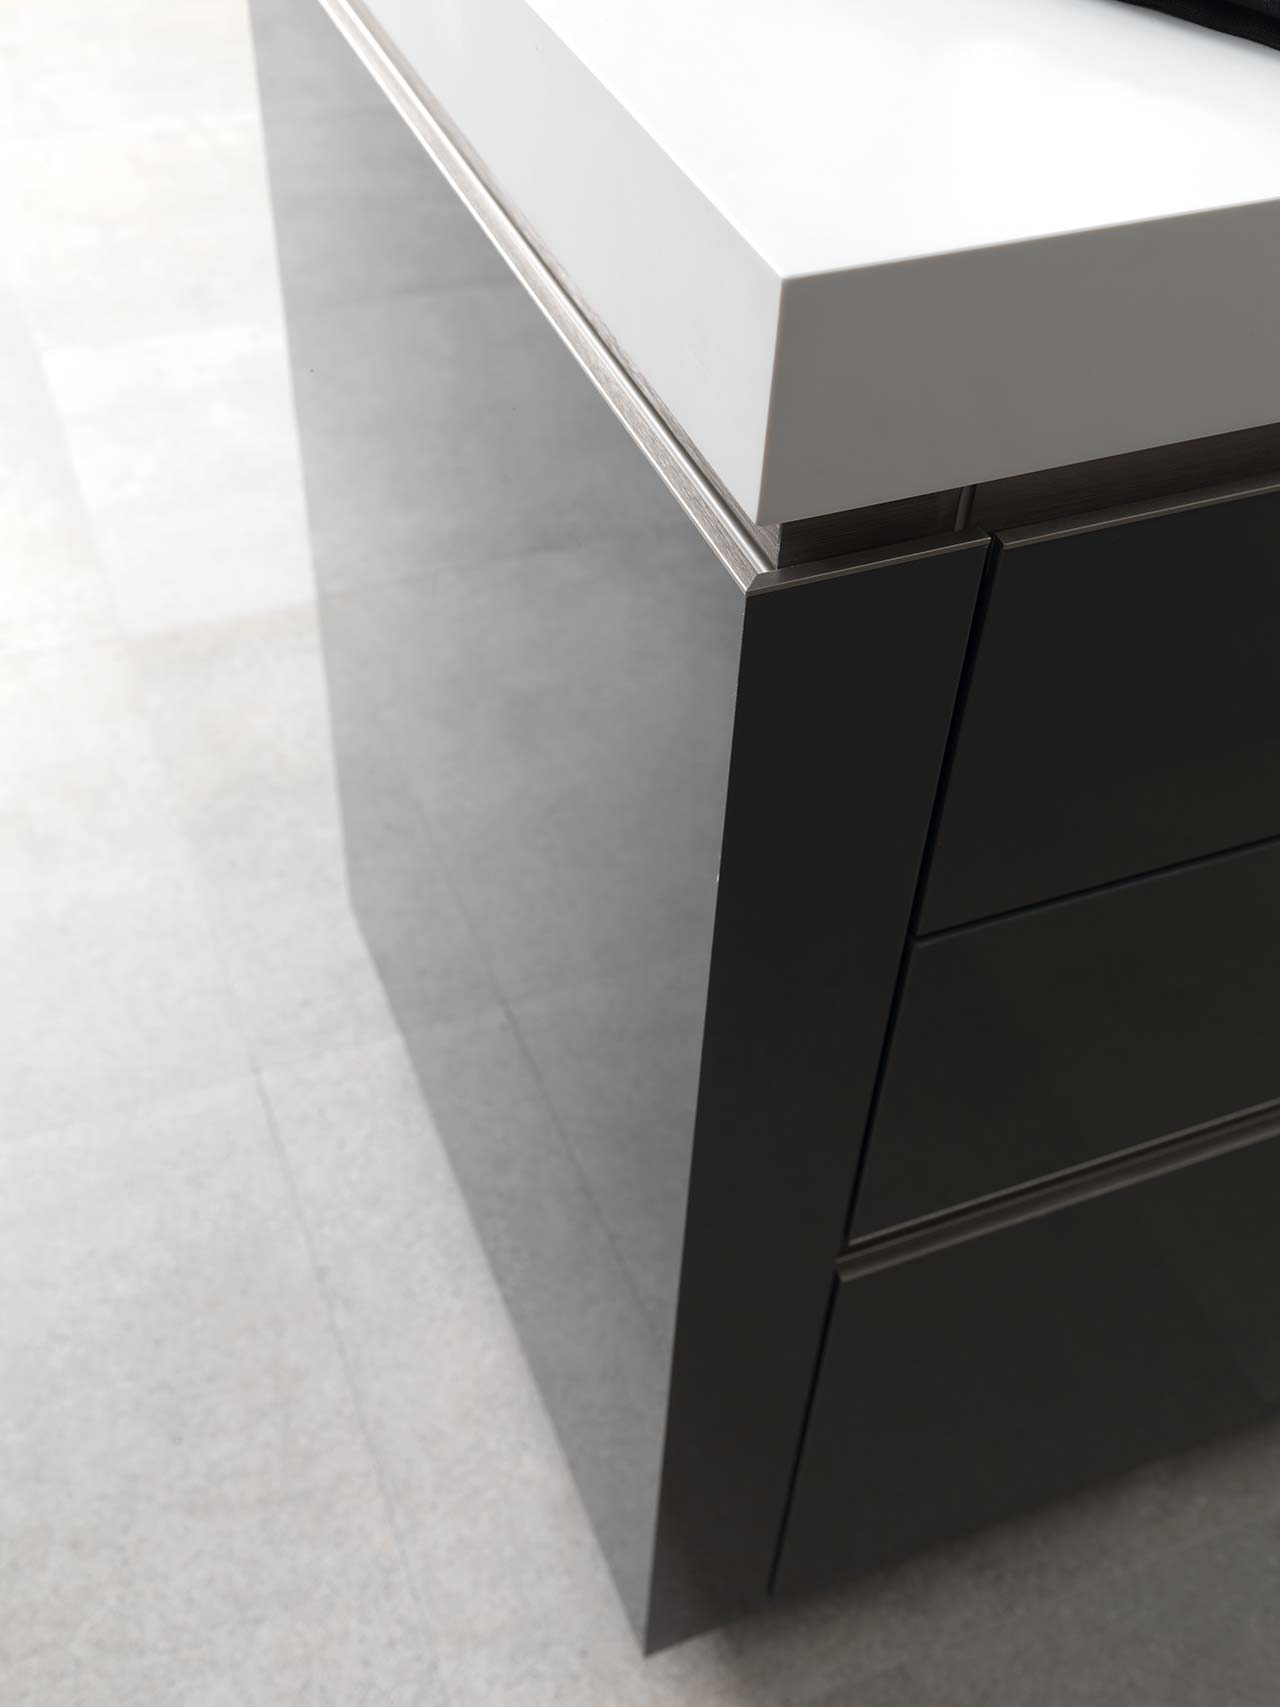 KRION Solid Surface Emotions PORCELANOSA Kitchens Gamadecor